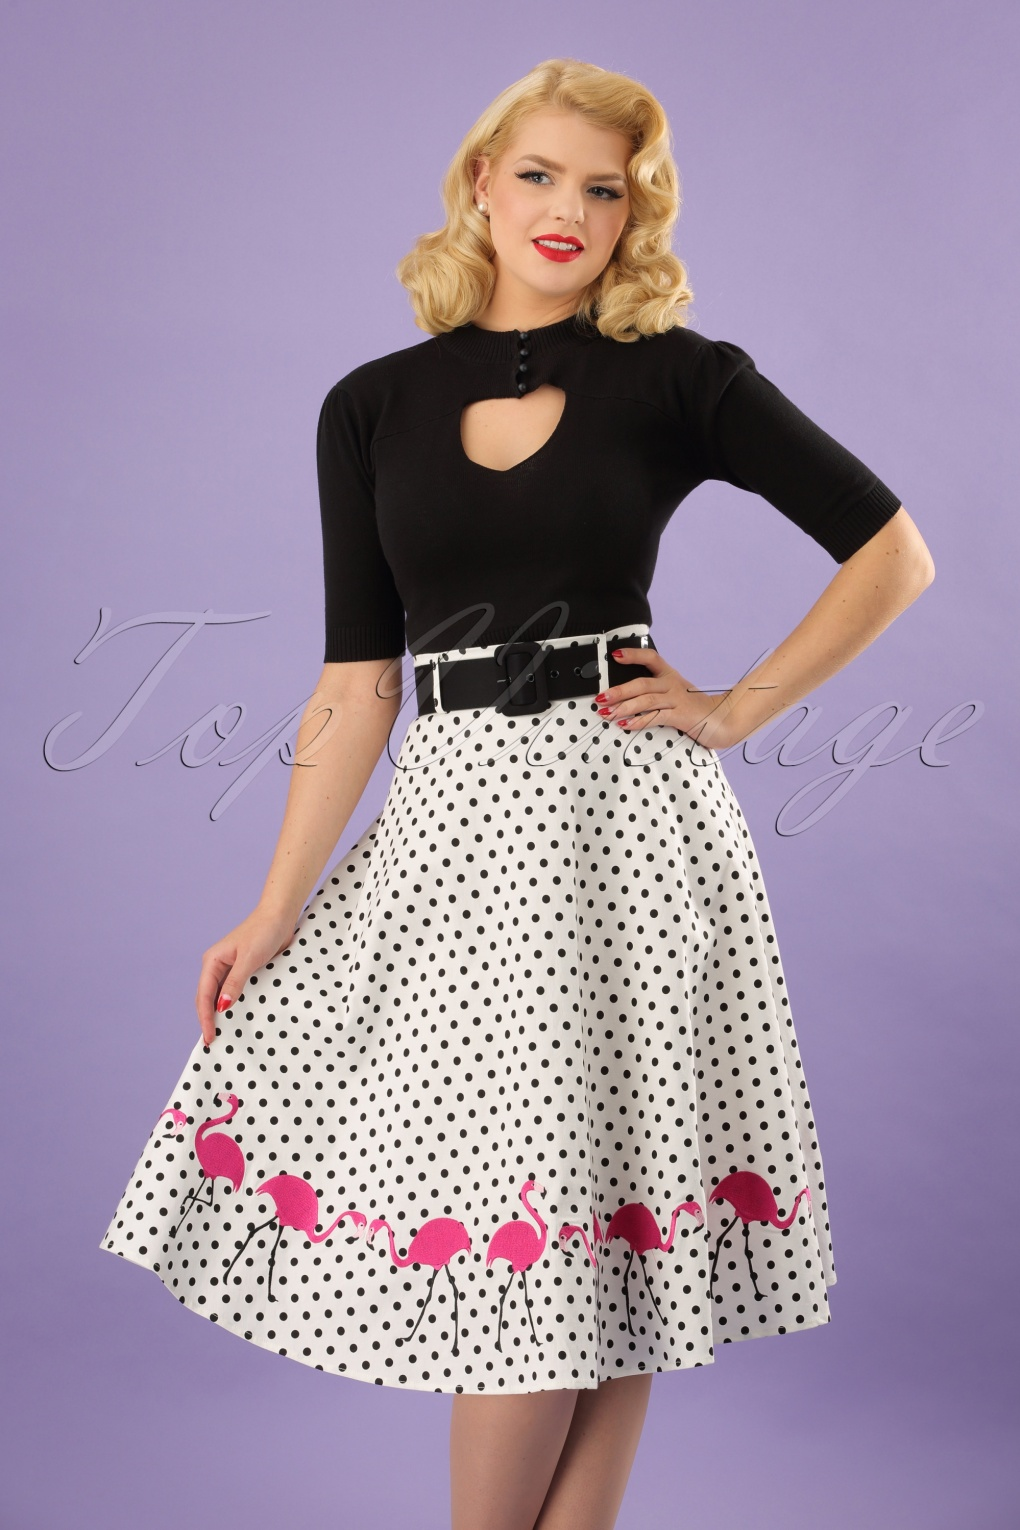 50s Skirt Styles | Poodle Skirts, Circle Skirts, Pencil Skirts 1950s 50s Fancy Flamingo Swing Skirt in White £51.08 AT vintagedancer.com